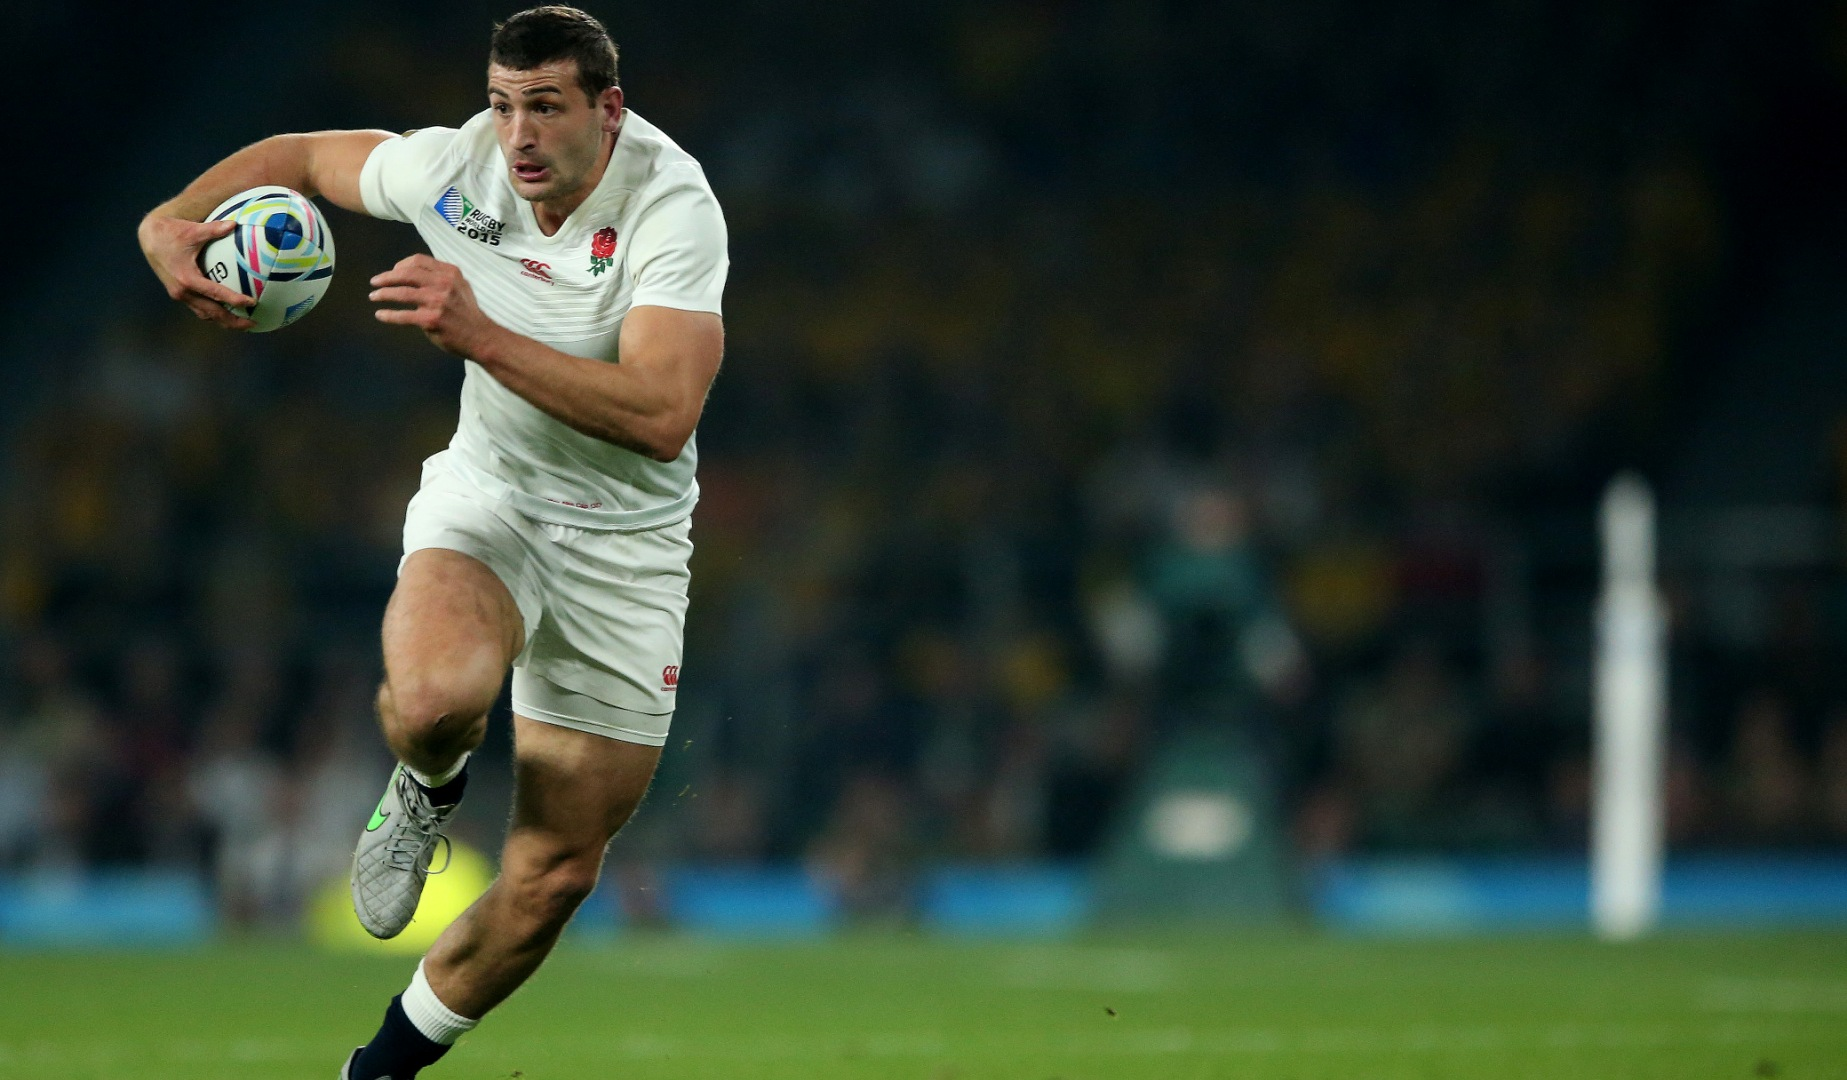 LionsWatch: May makes fairytale return for Gloucester